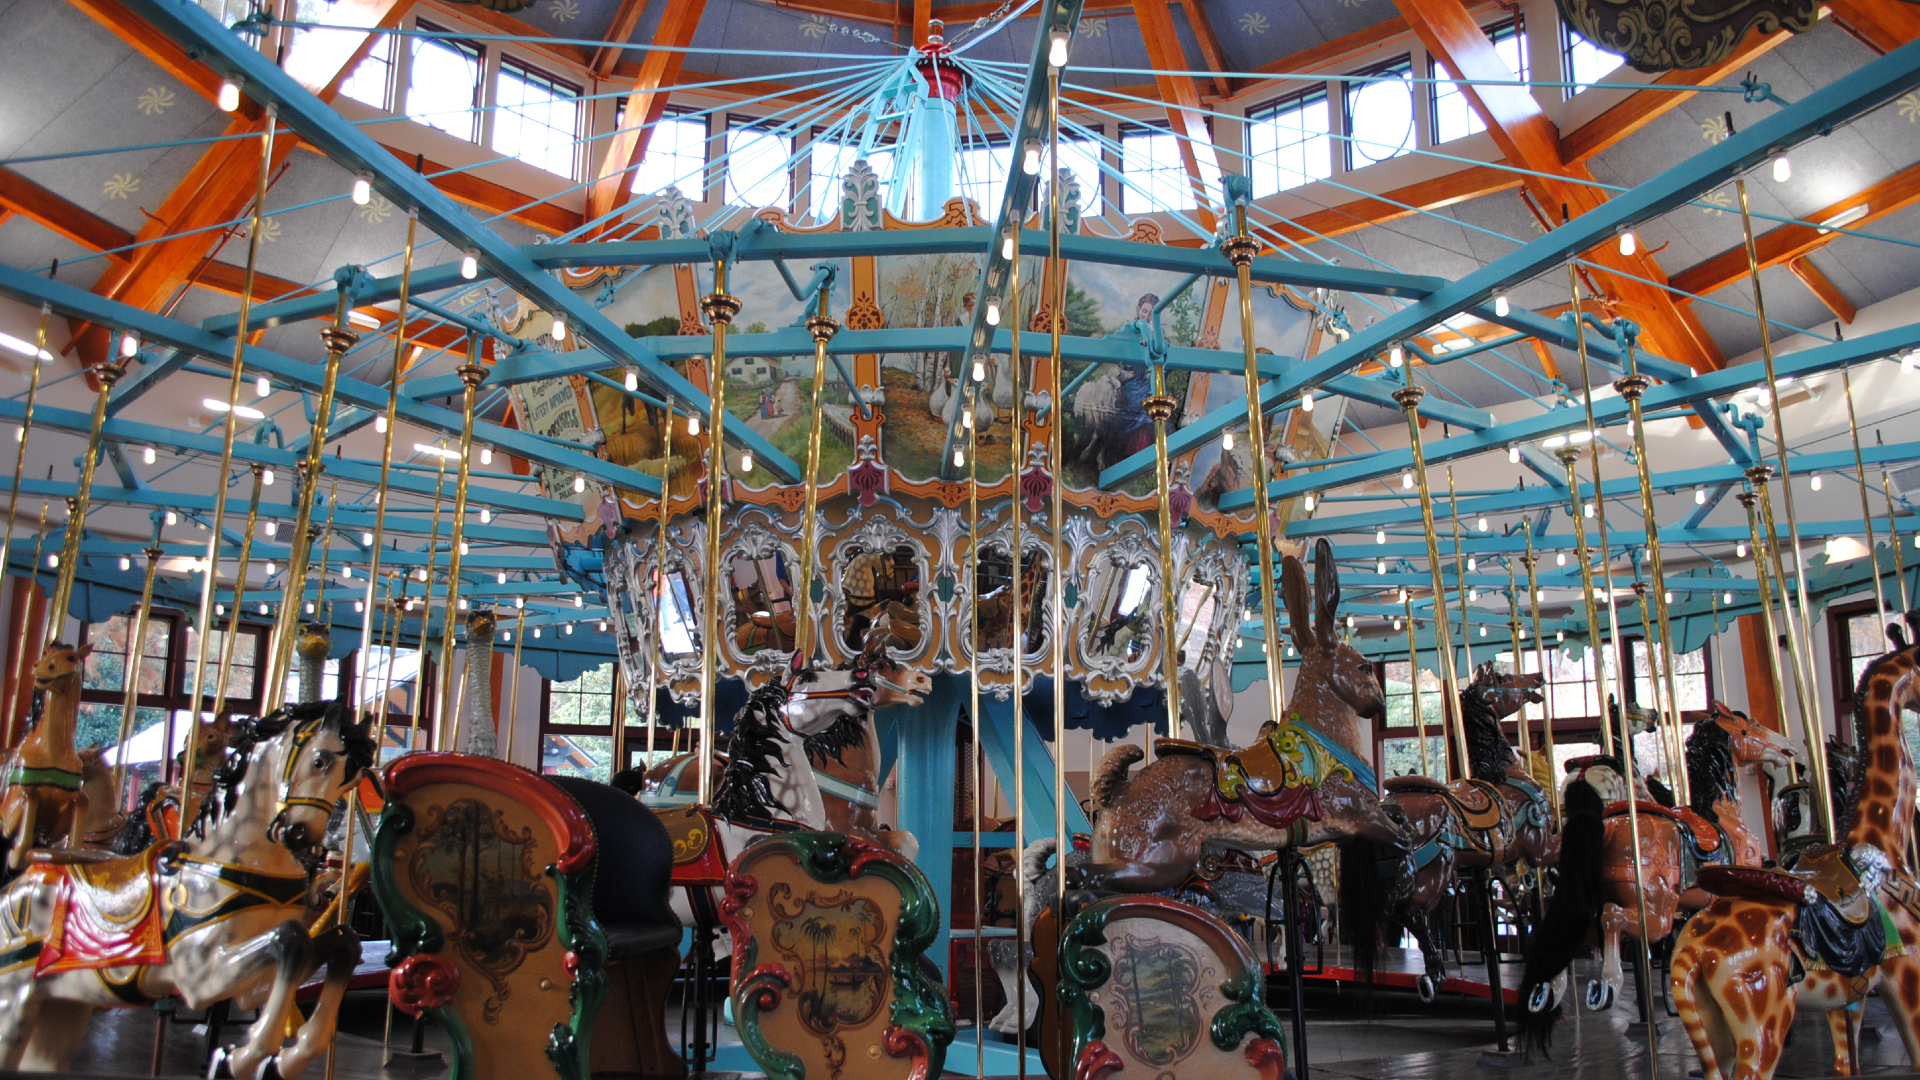 Inside of the Pullen Park historic carousel